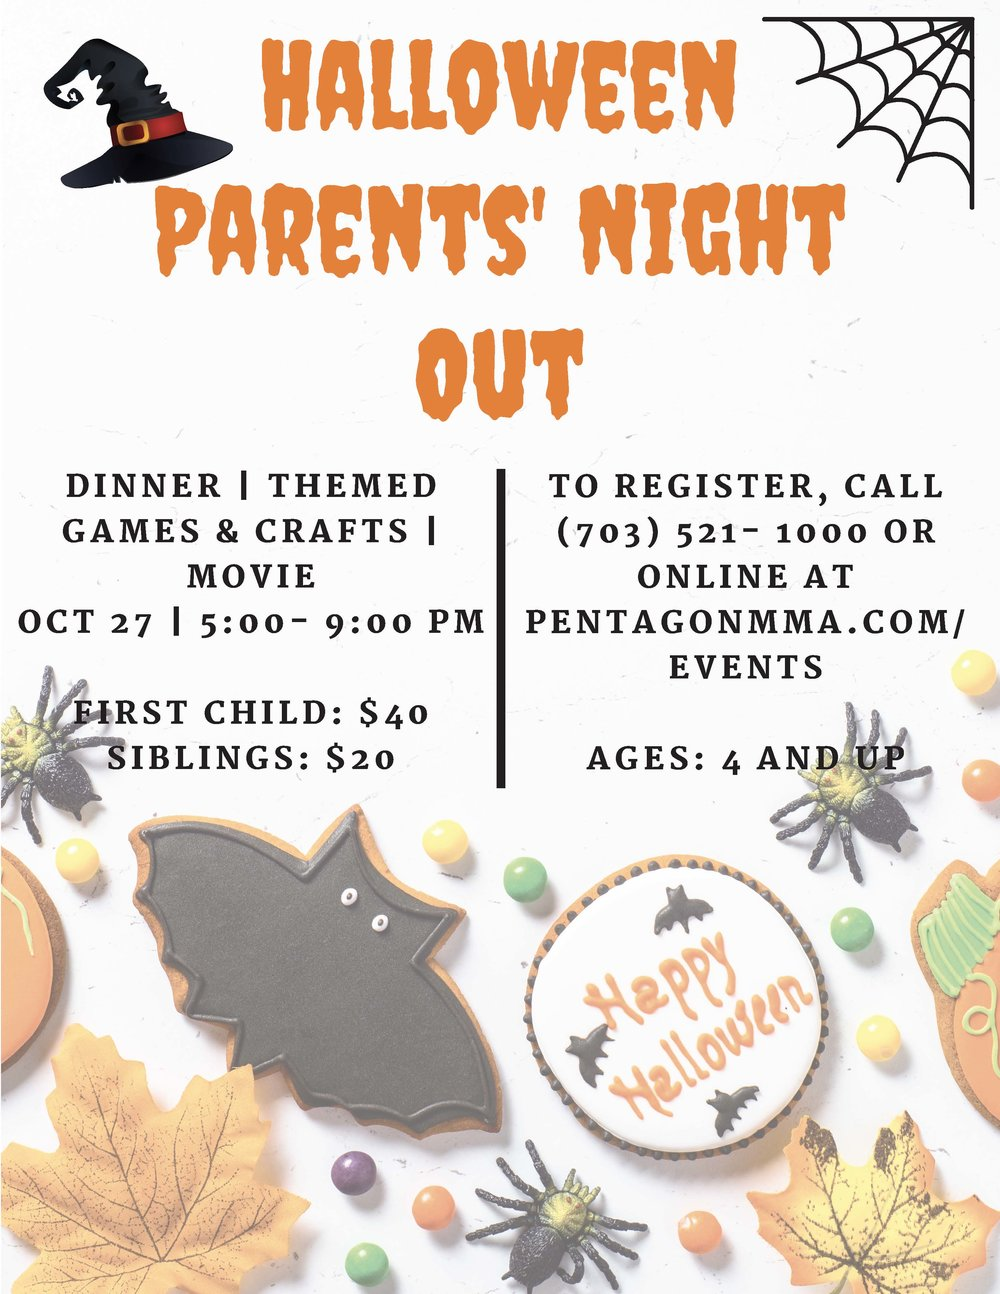 Parents' Night Out- Oct 27.jpg